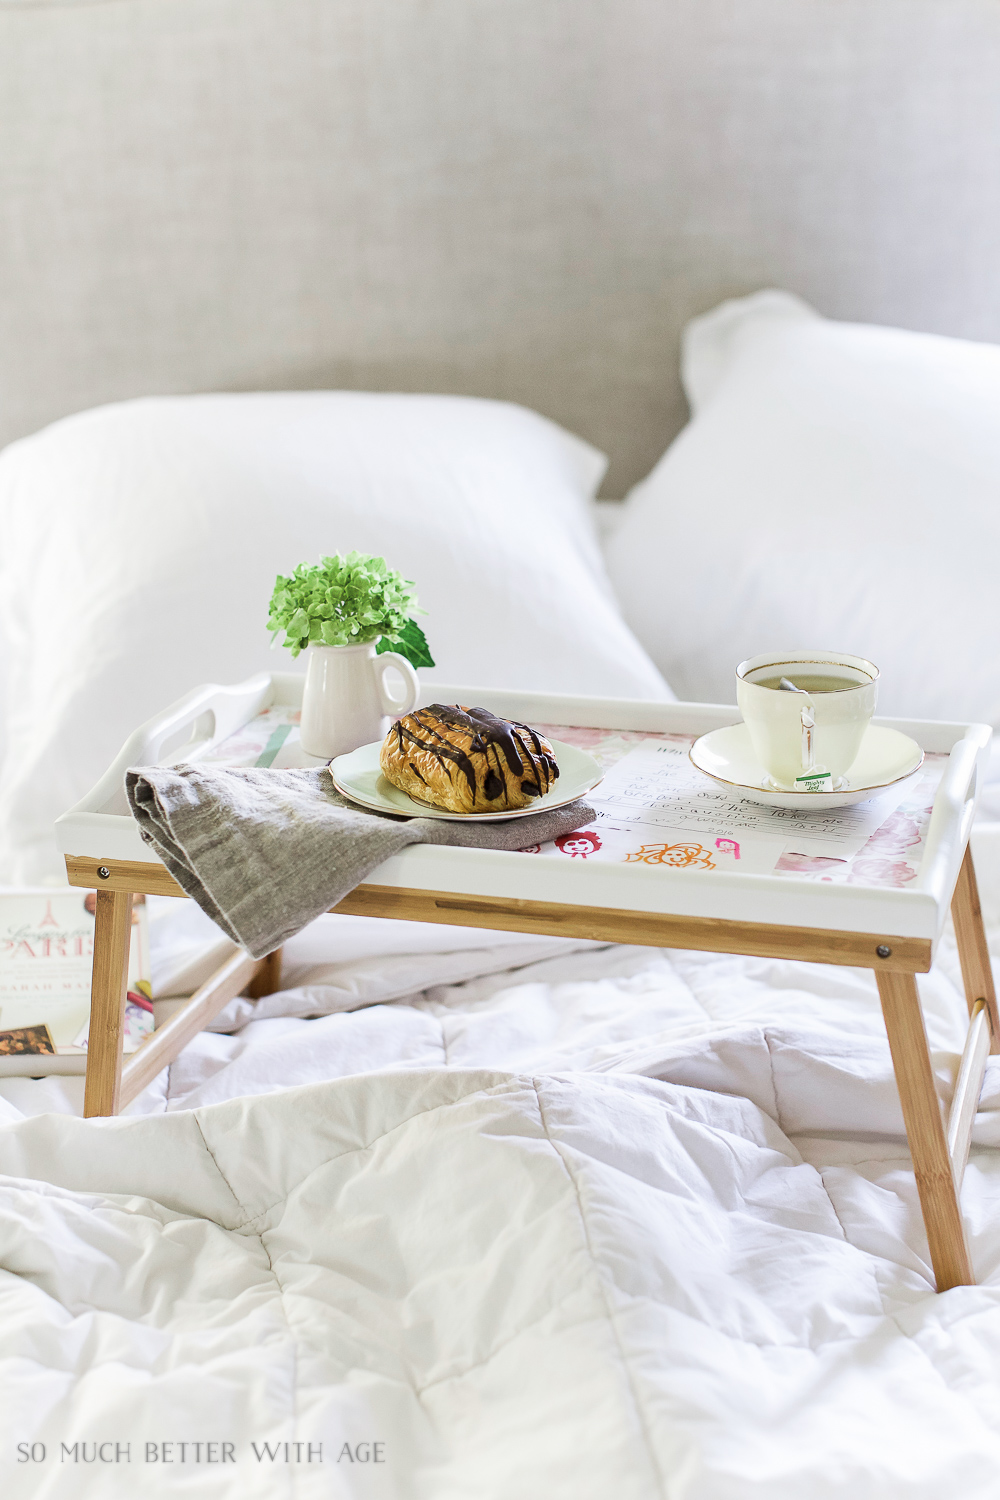 Mother S Day Breakfast In Bed Tray With Decoupaged Kids Art On